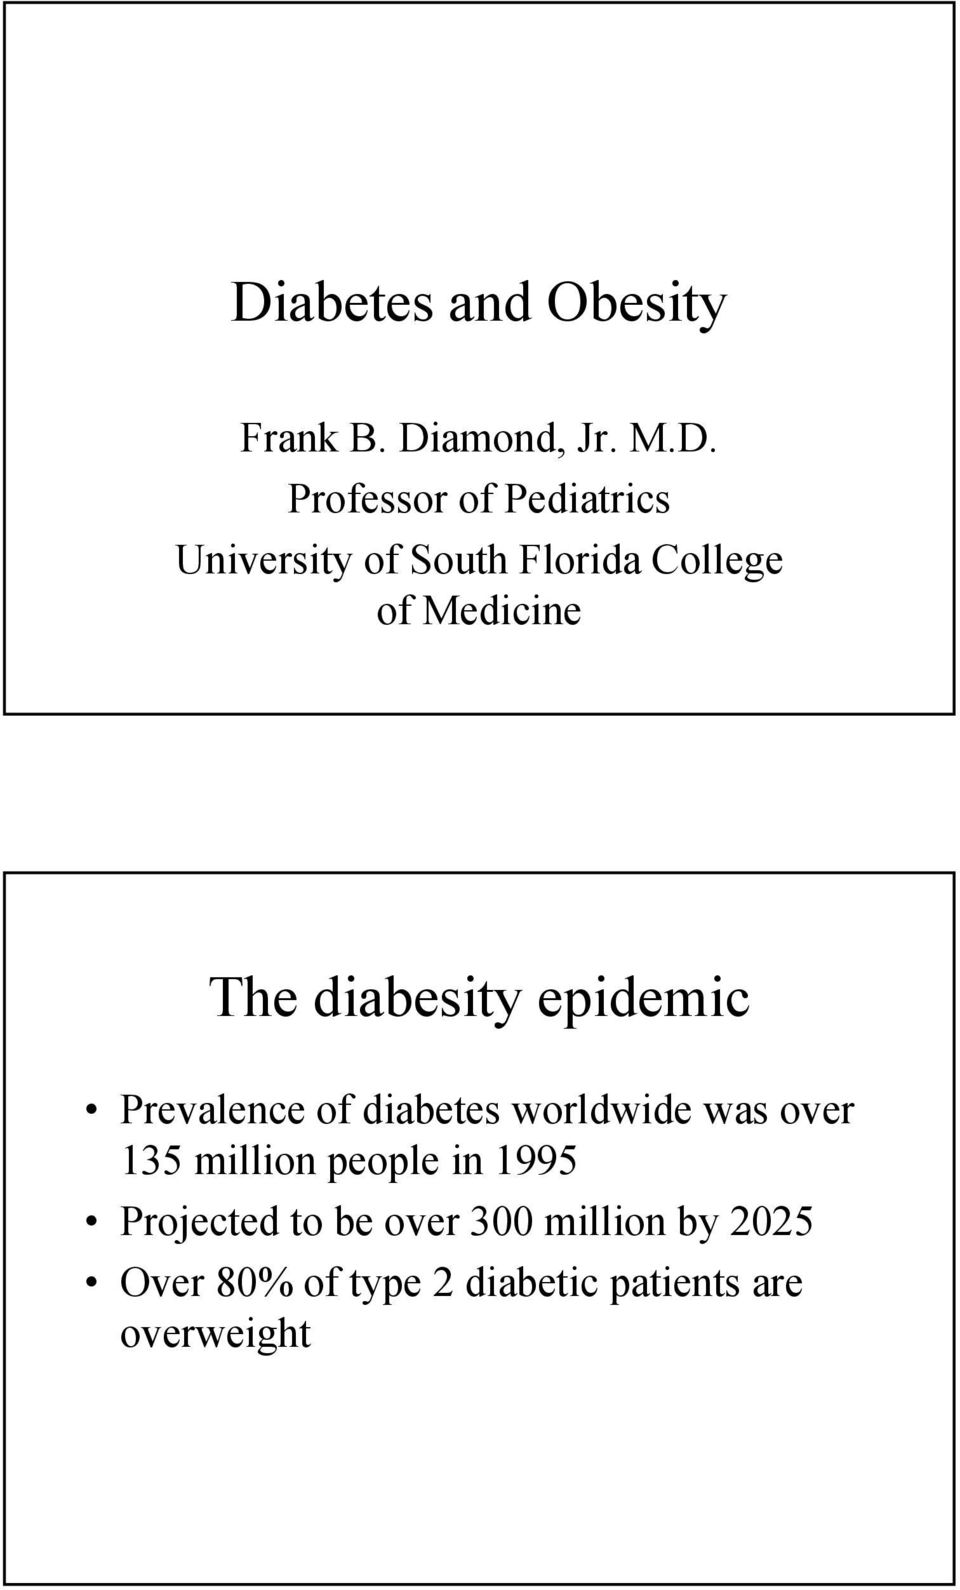 Prevalence of diabetes worldwide was over 135 million people in 1995